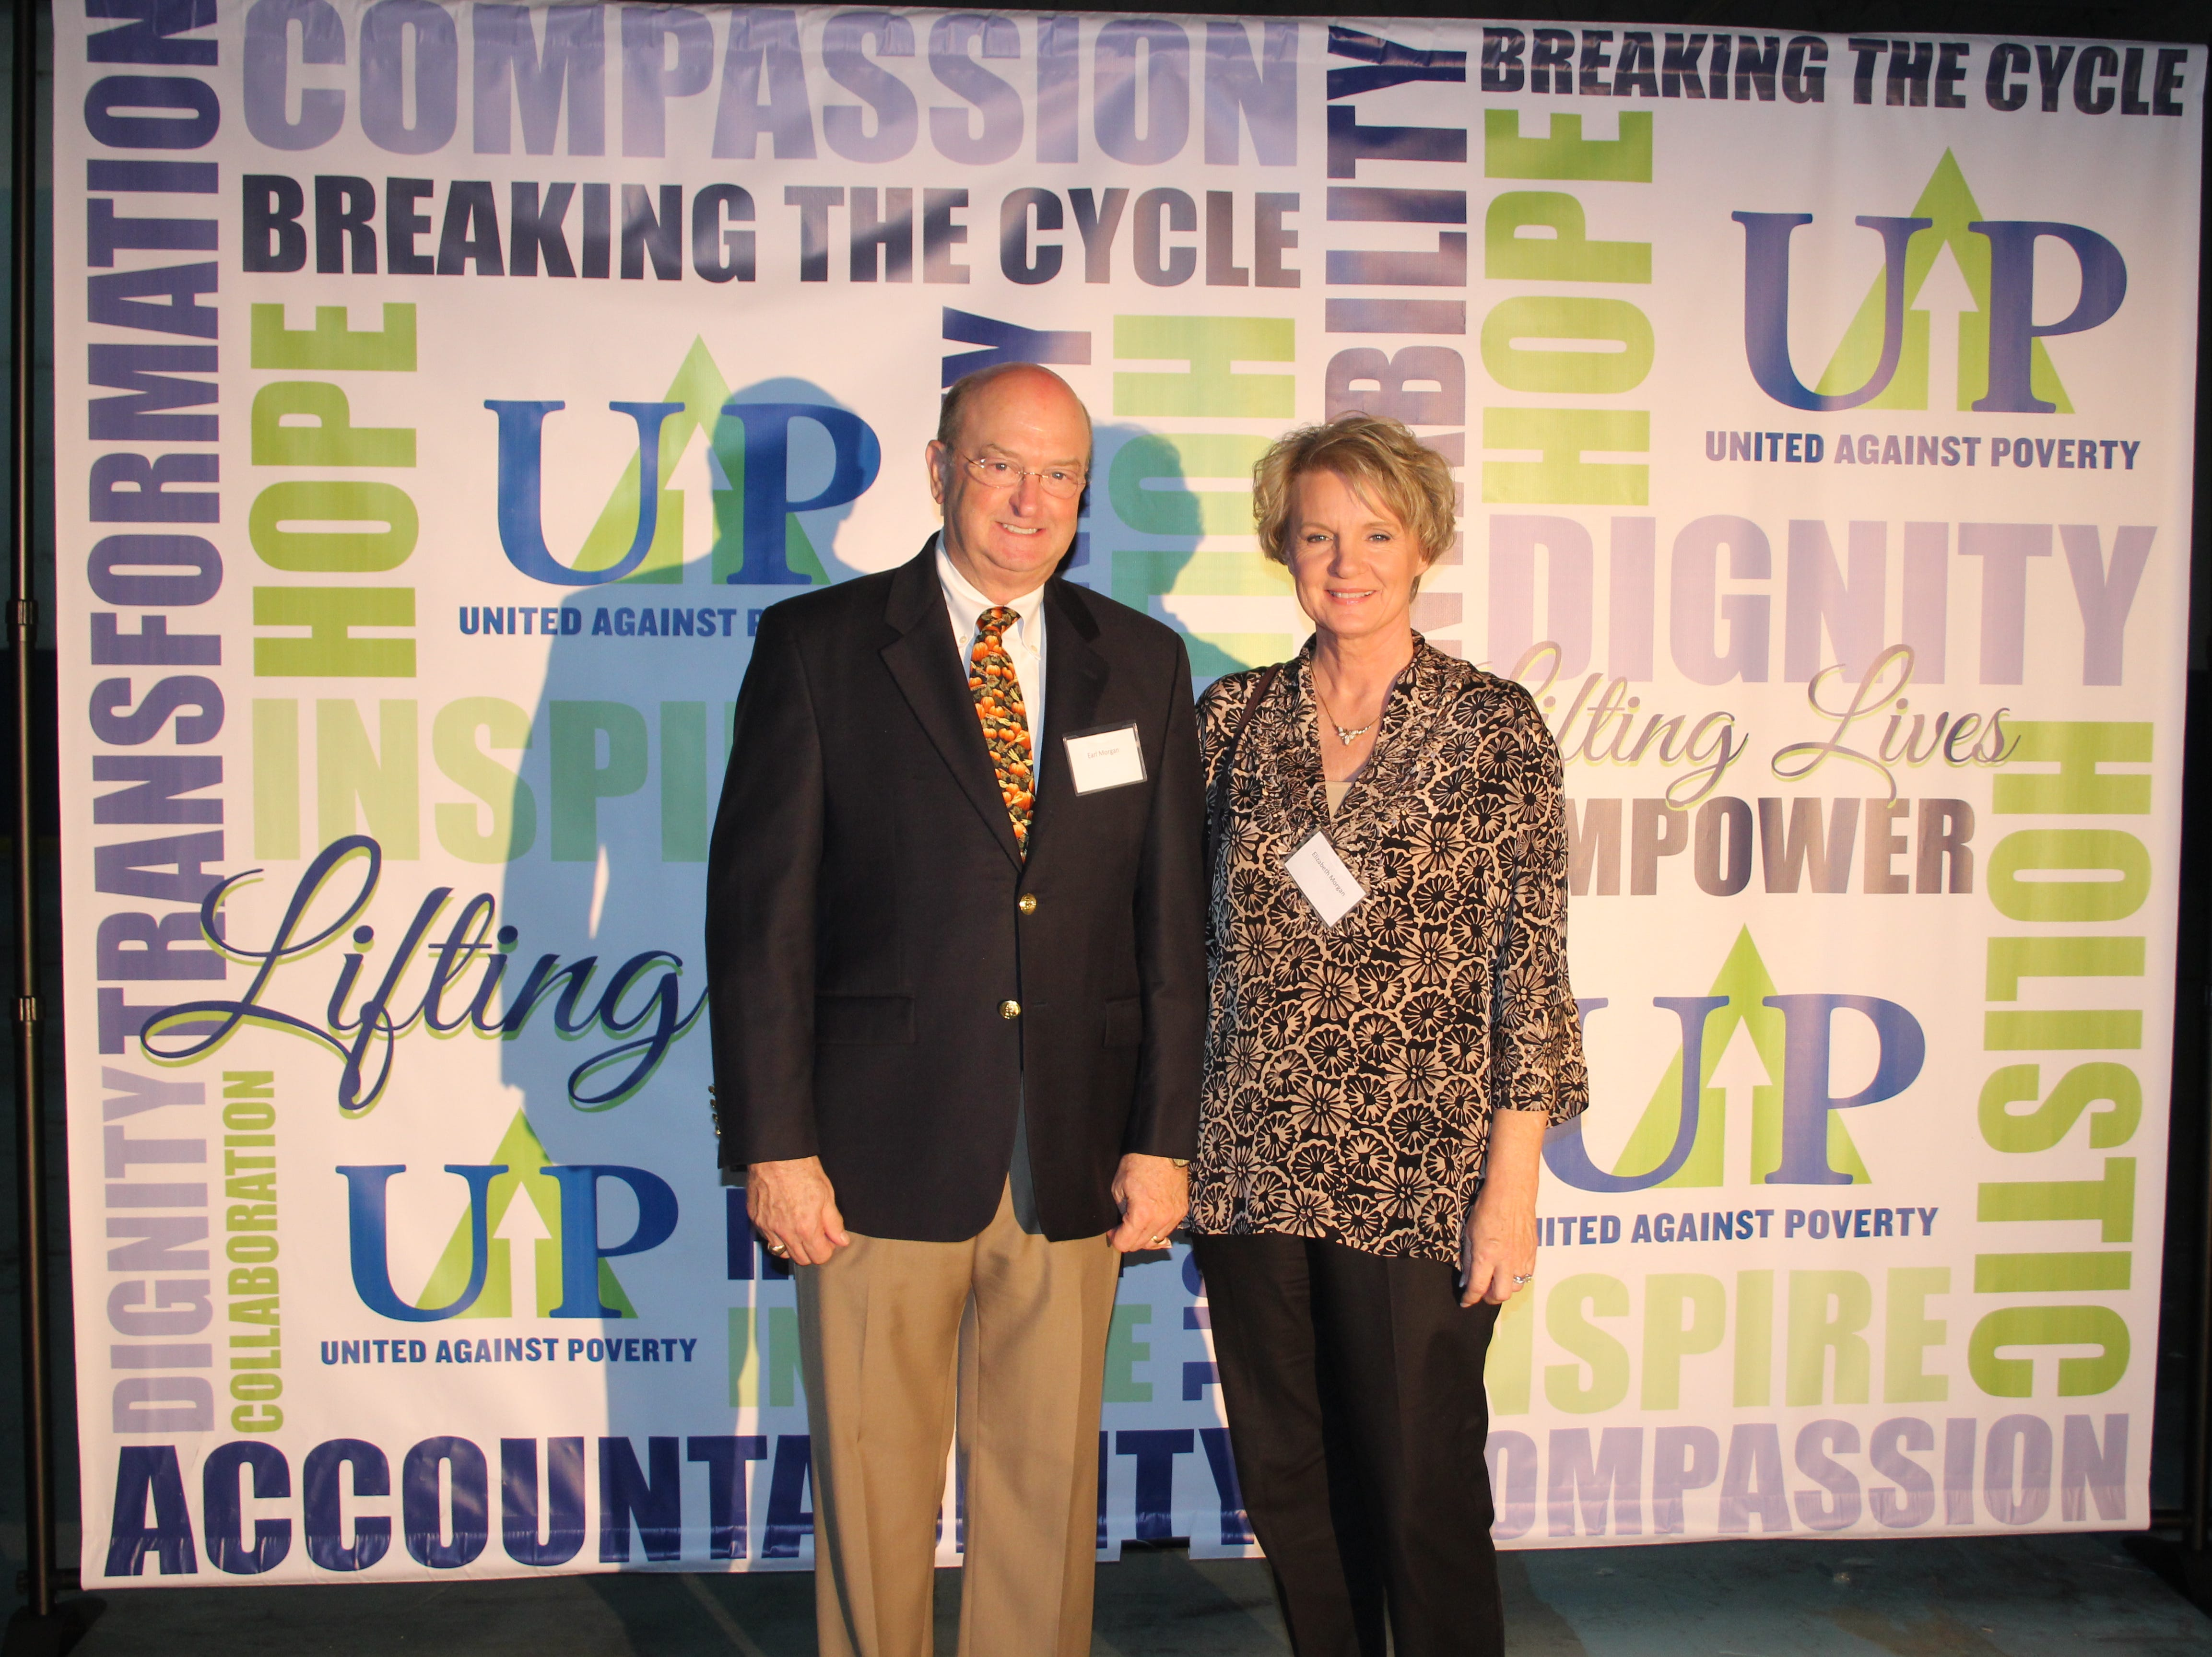 Earl and Elizabeth Morgan at United Against Poverty's Lifting Lives Out of Poverty Capital Campaign kick-off for Phase II.